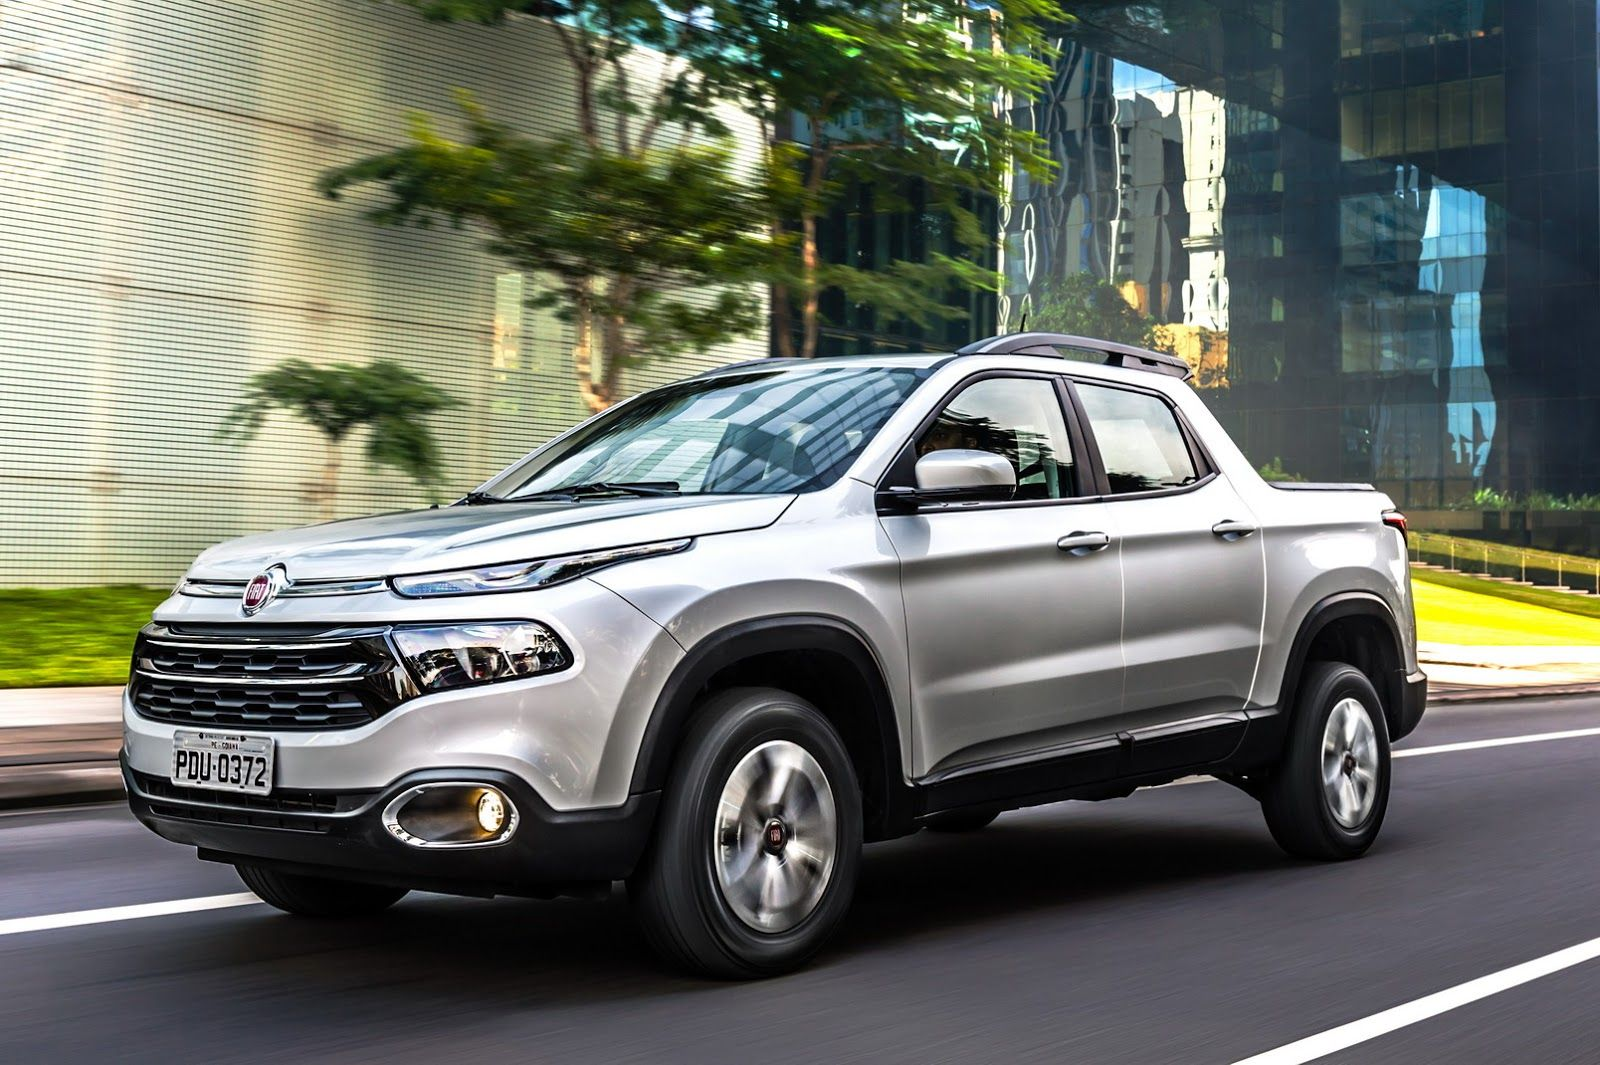 Fiat Toro Unlikely To Be Sold In The Usa Fiat Chrysler Automobiles